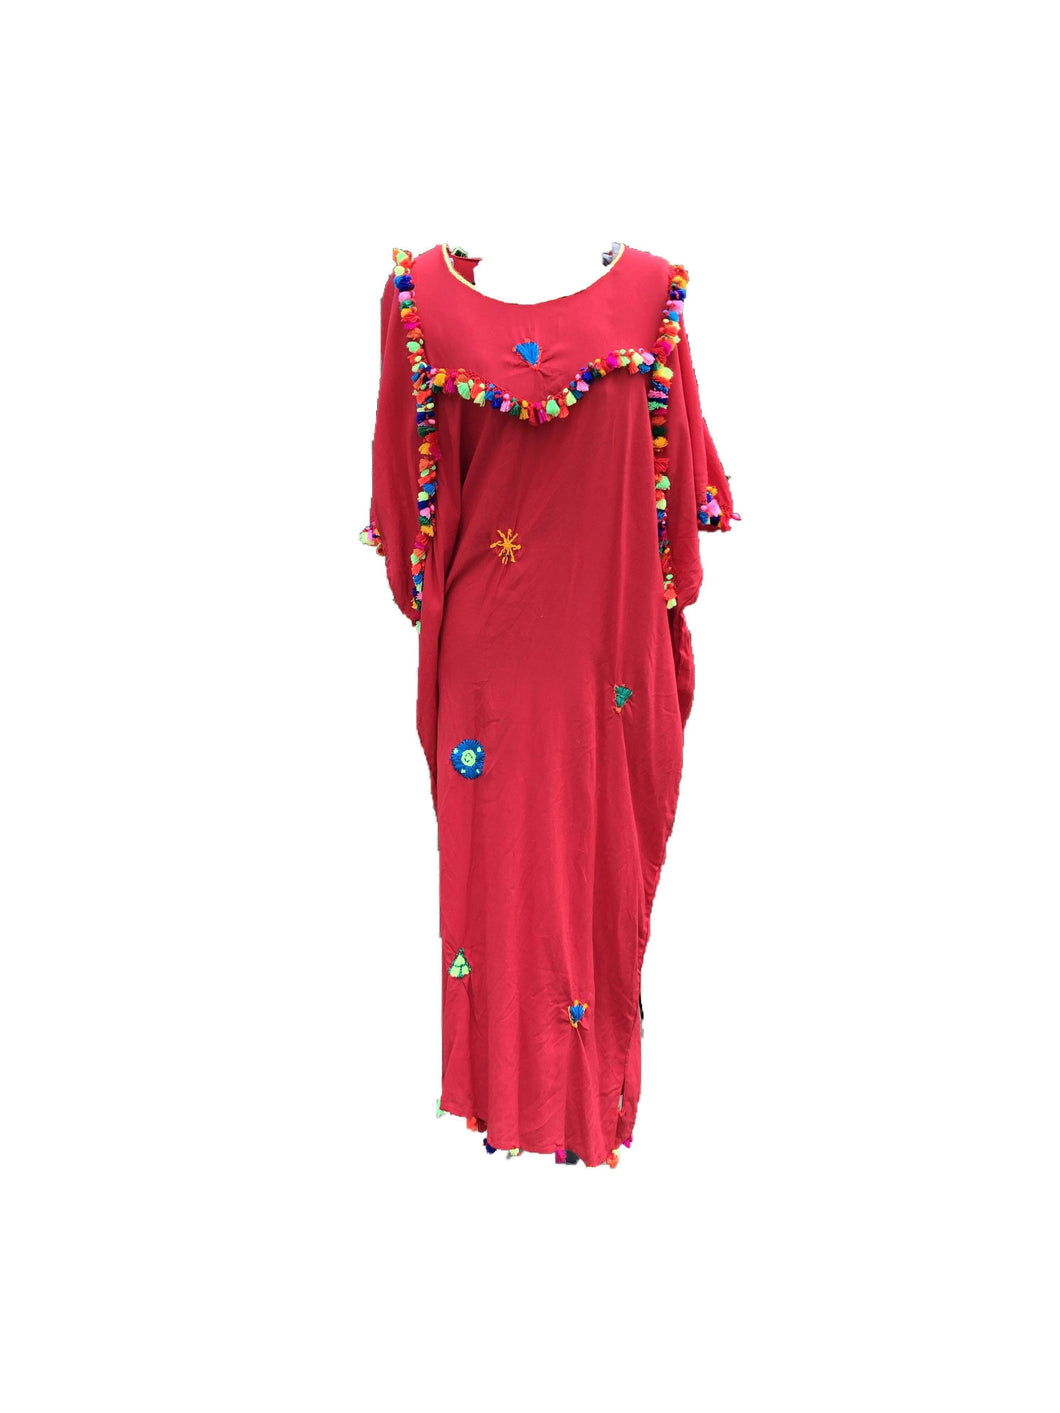 Festive Women's Embroidered Moroccan Lightweight Kaftan Dress with Pompoms - Red Kaftans